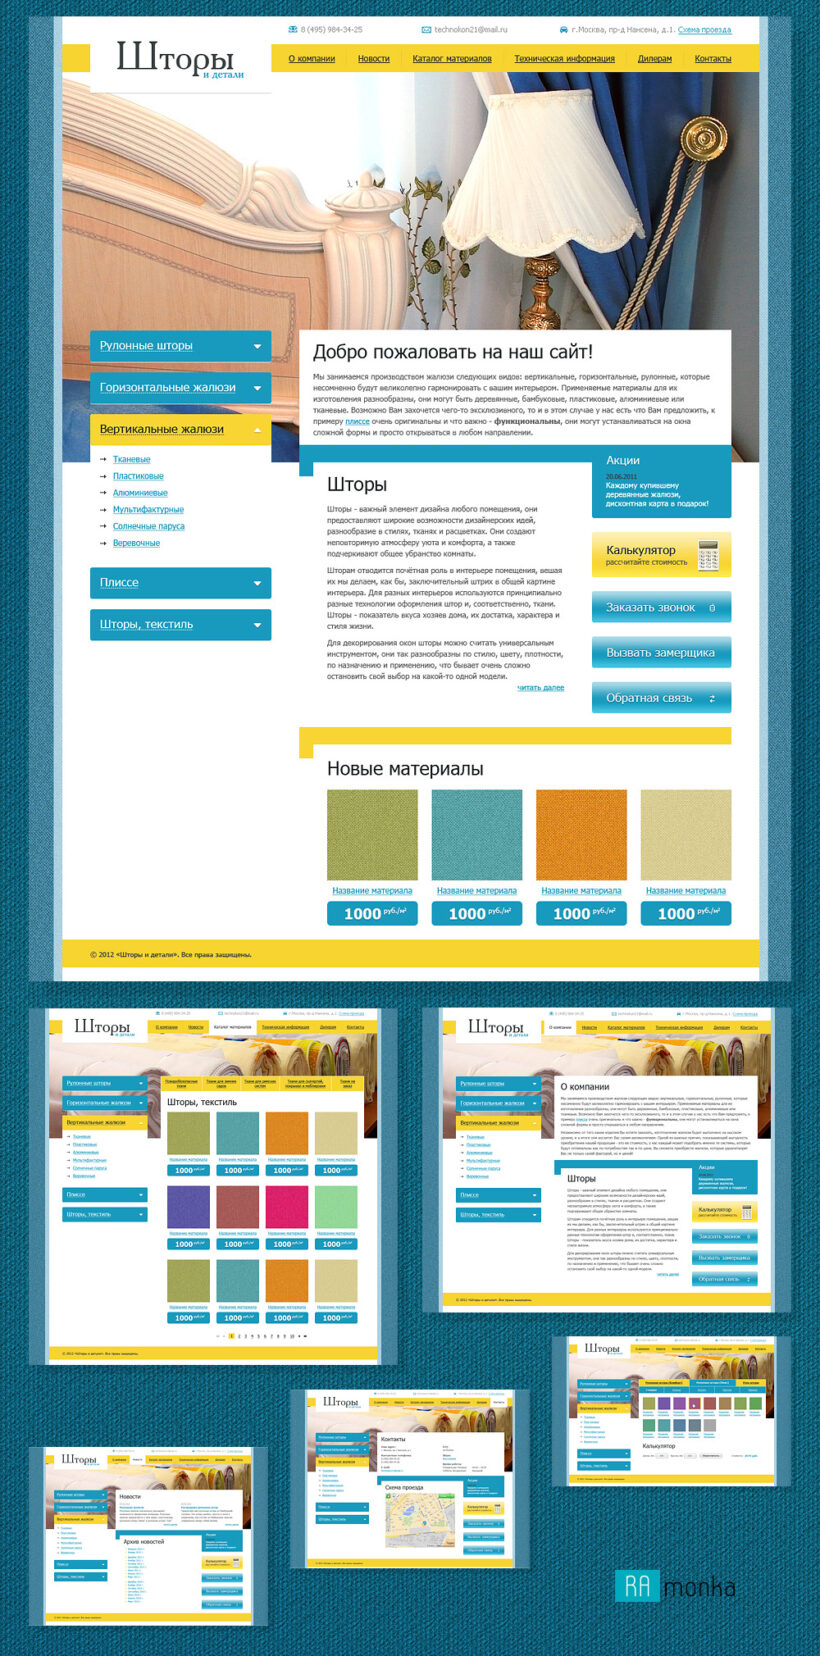 Web Design of Curtains and their Details Online Store Shtory & Detali